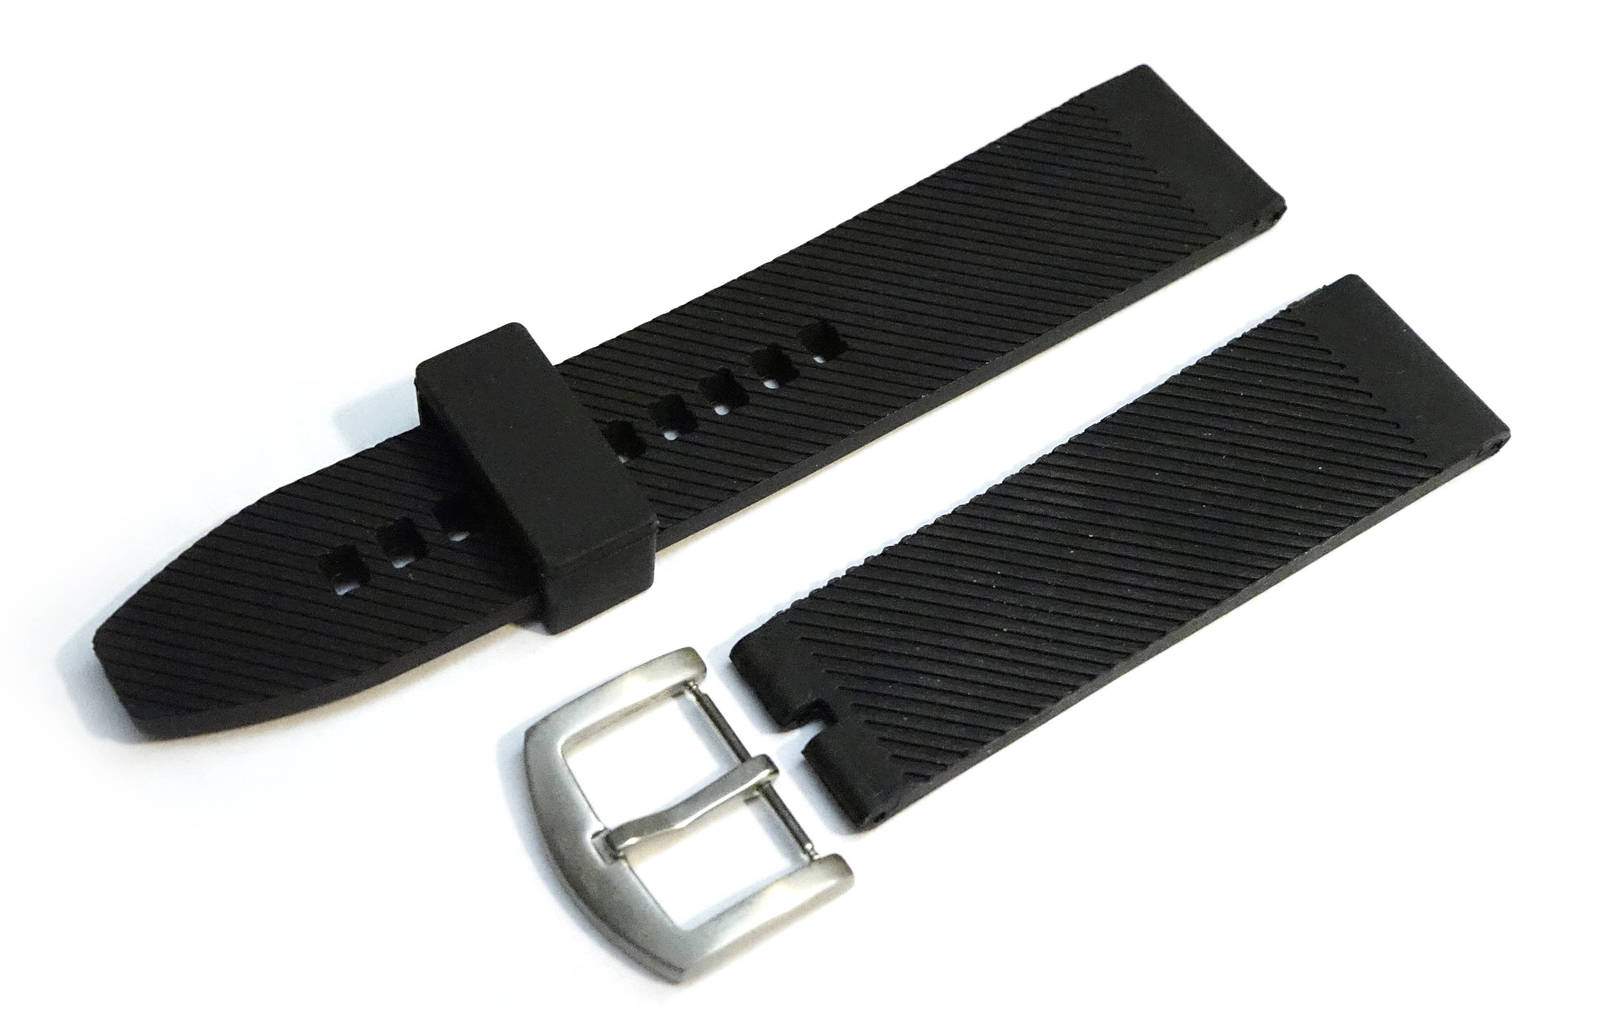 BREITLING Black 24mm 22mm Silicone Rubber Diver Watch Band Replacement Strap FRO